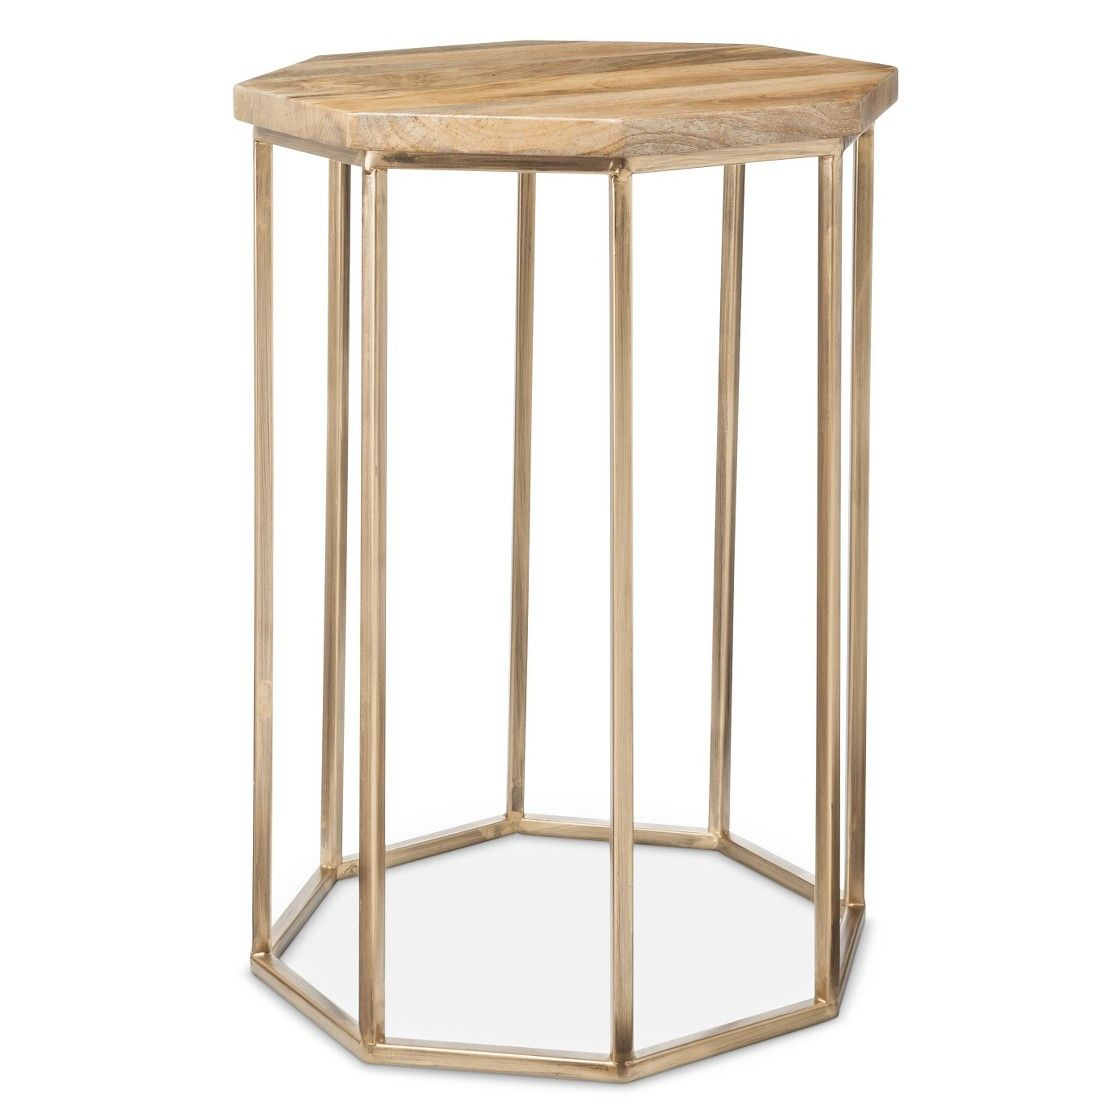 target threshold accent table tops caged home design living gold center reclaimed wood cabinet circular outdoor furniture west elm white side oval teak coffee rustic dining corner